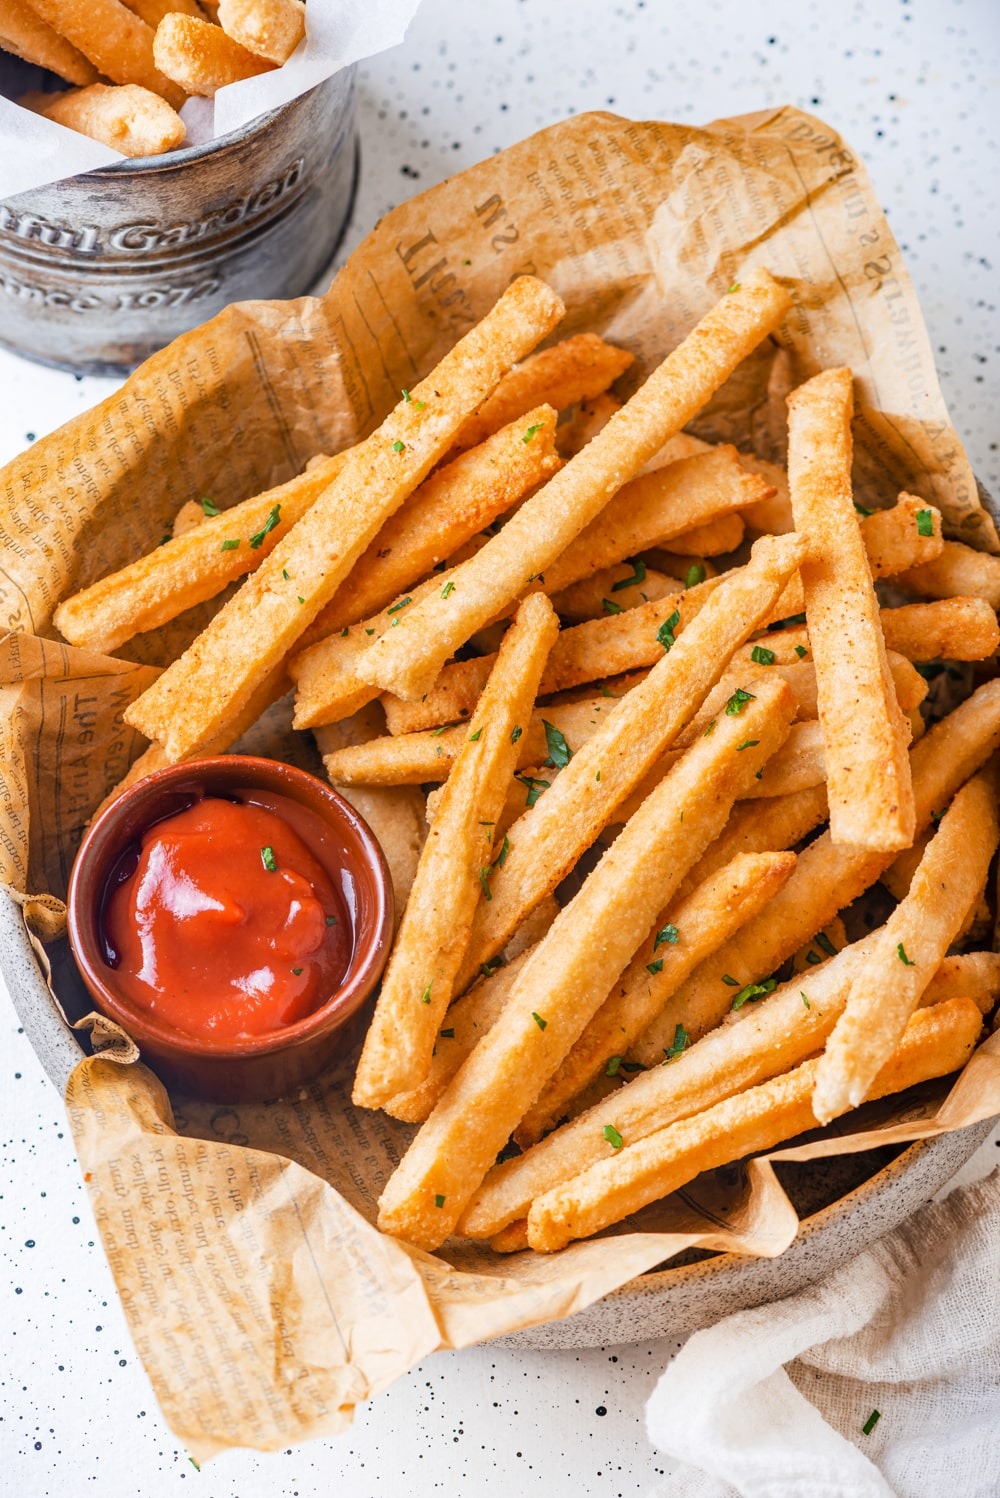 An overhead view of a basket of keto french fries. The french fries are laying on top of a sheet of brown newspaper. A small cup of ketchup is on the left side of the fries in the basket. The basket is on a white counter.